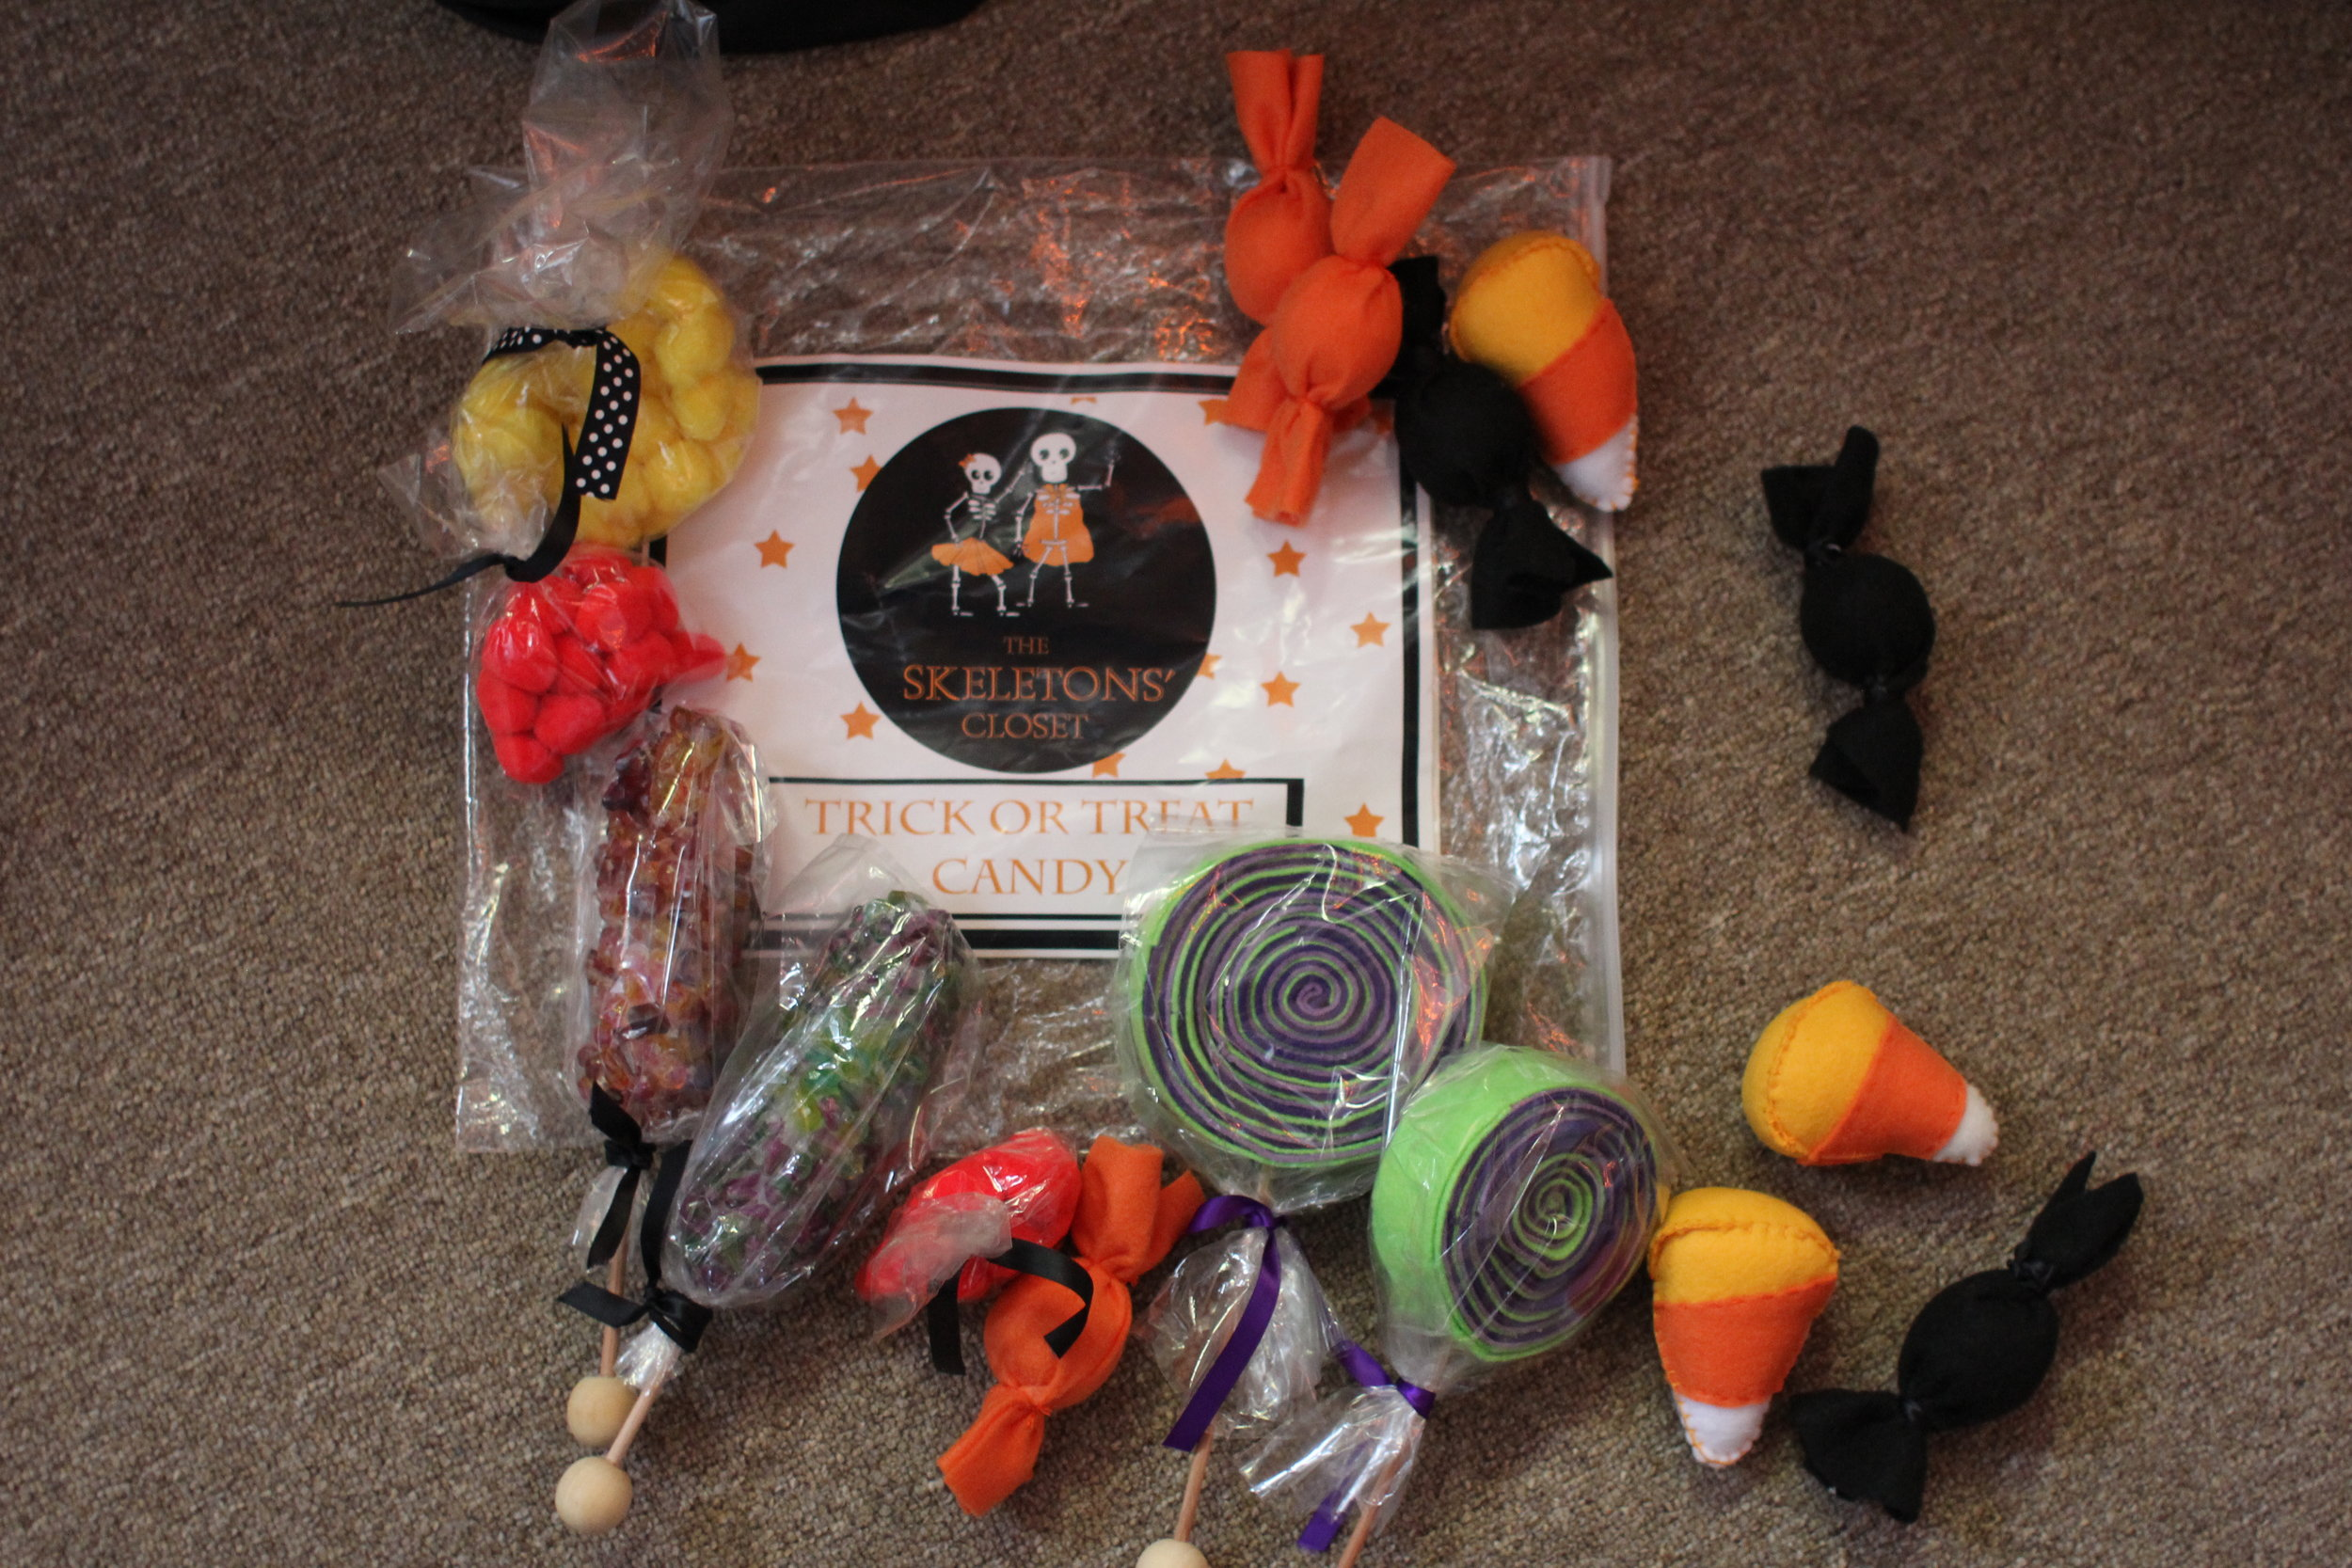 Lollipops, rock candy, candy corn, cinnamon dots, lemon heads, and taffy.  Oh my.